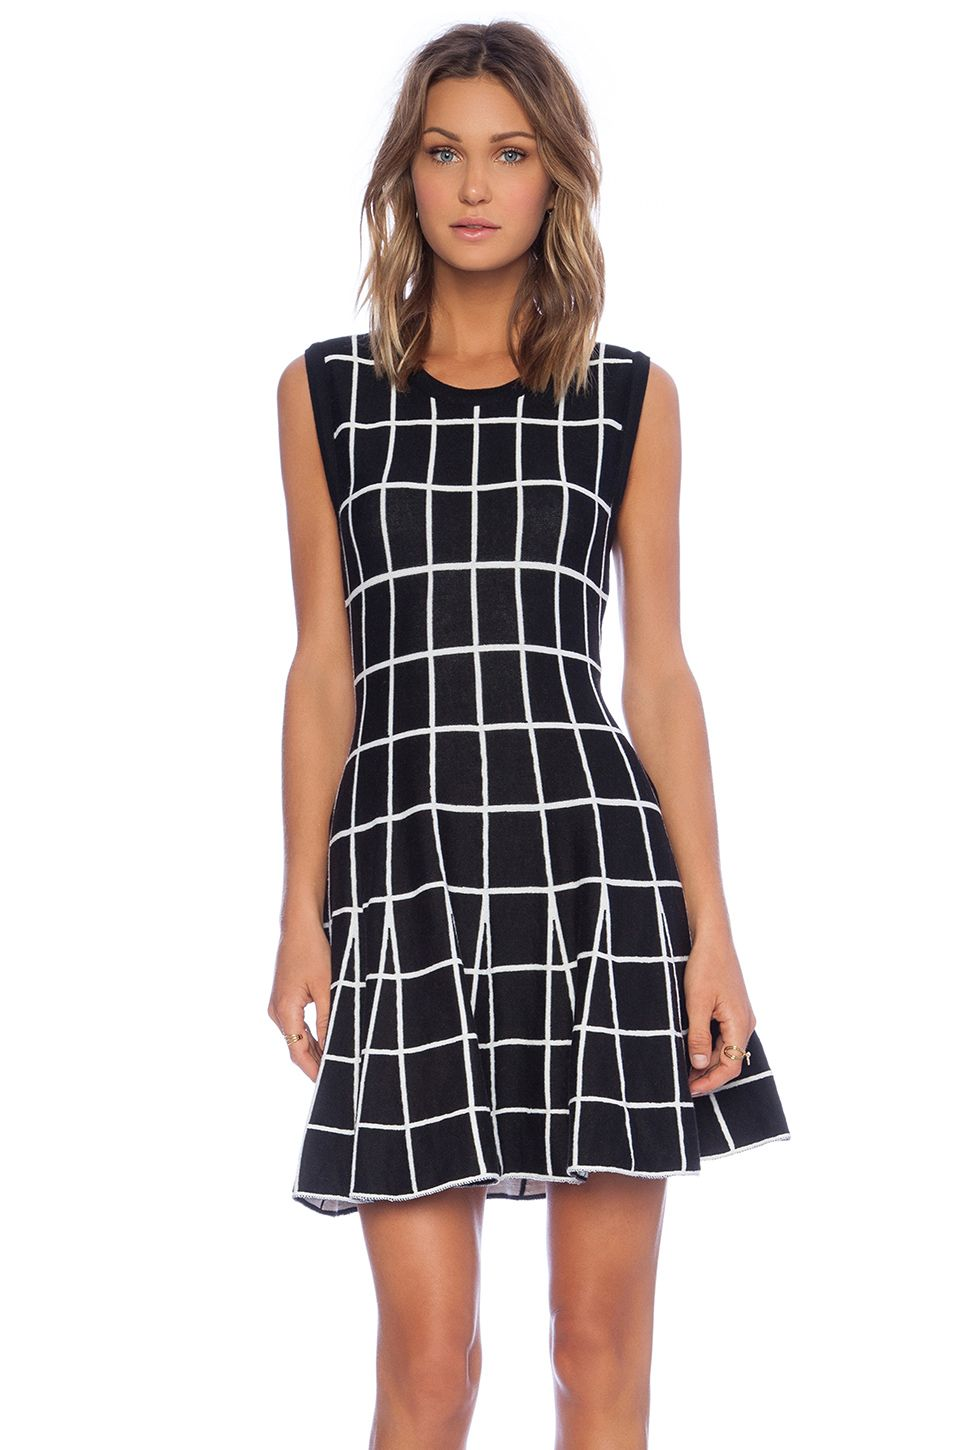 Joa Skater Dress In Black Check From Revolveclothing Com Revolve Clothing Dresses Clothes Design 1,339,969 likes · 6,857 talking about this. pinterest